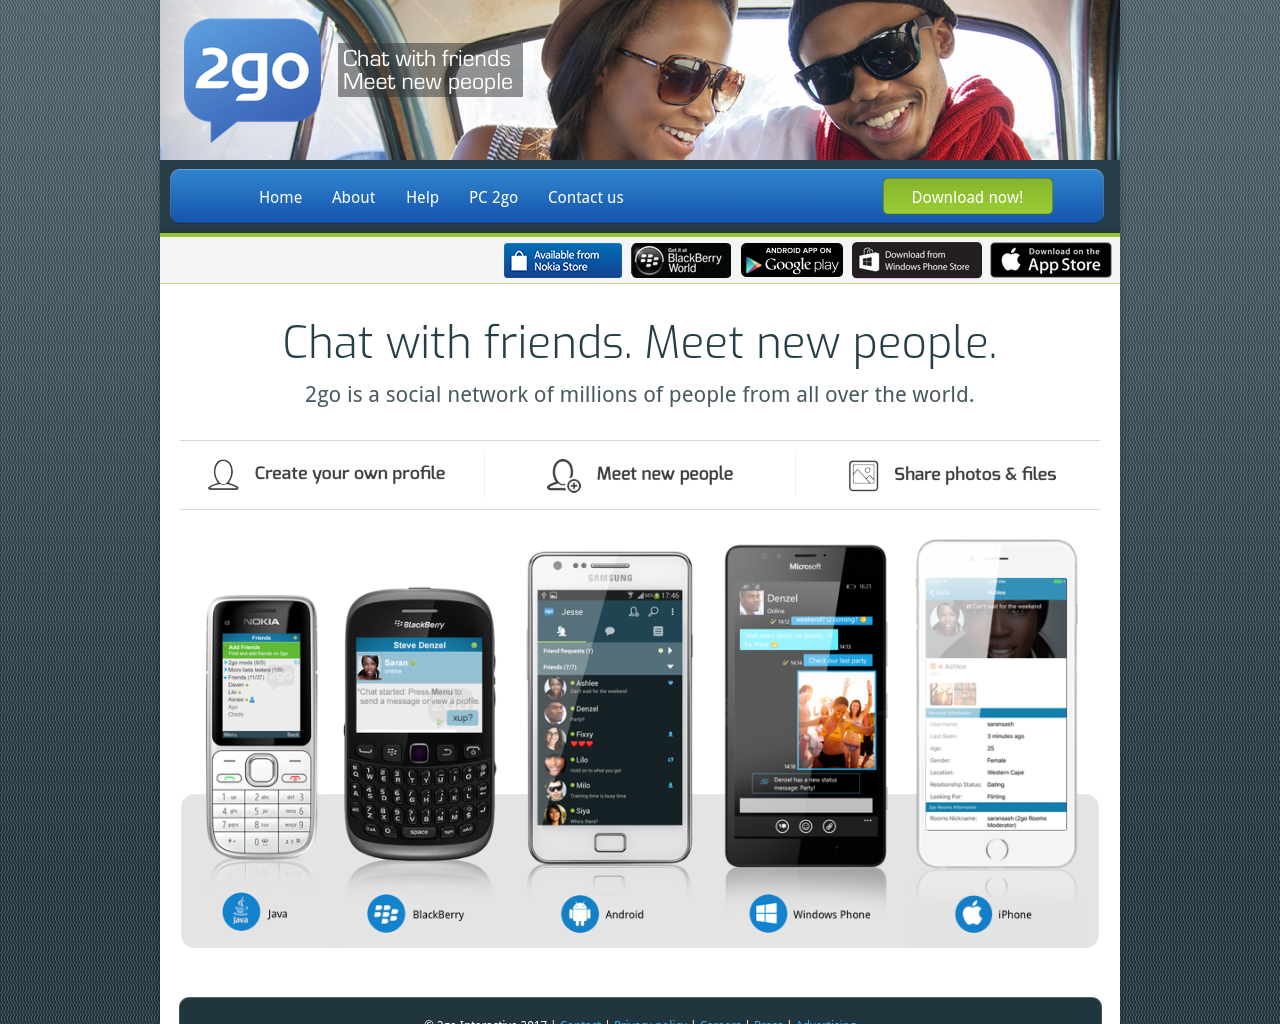 2Go-Mobile-Advertising-Reviews-Pricing